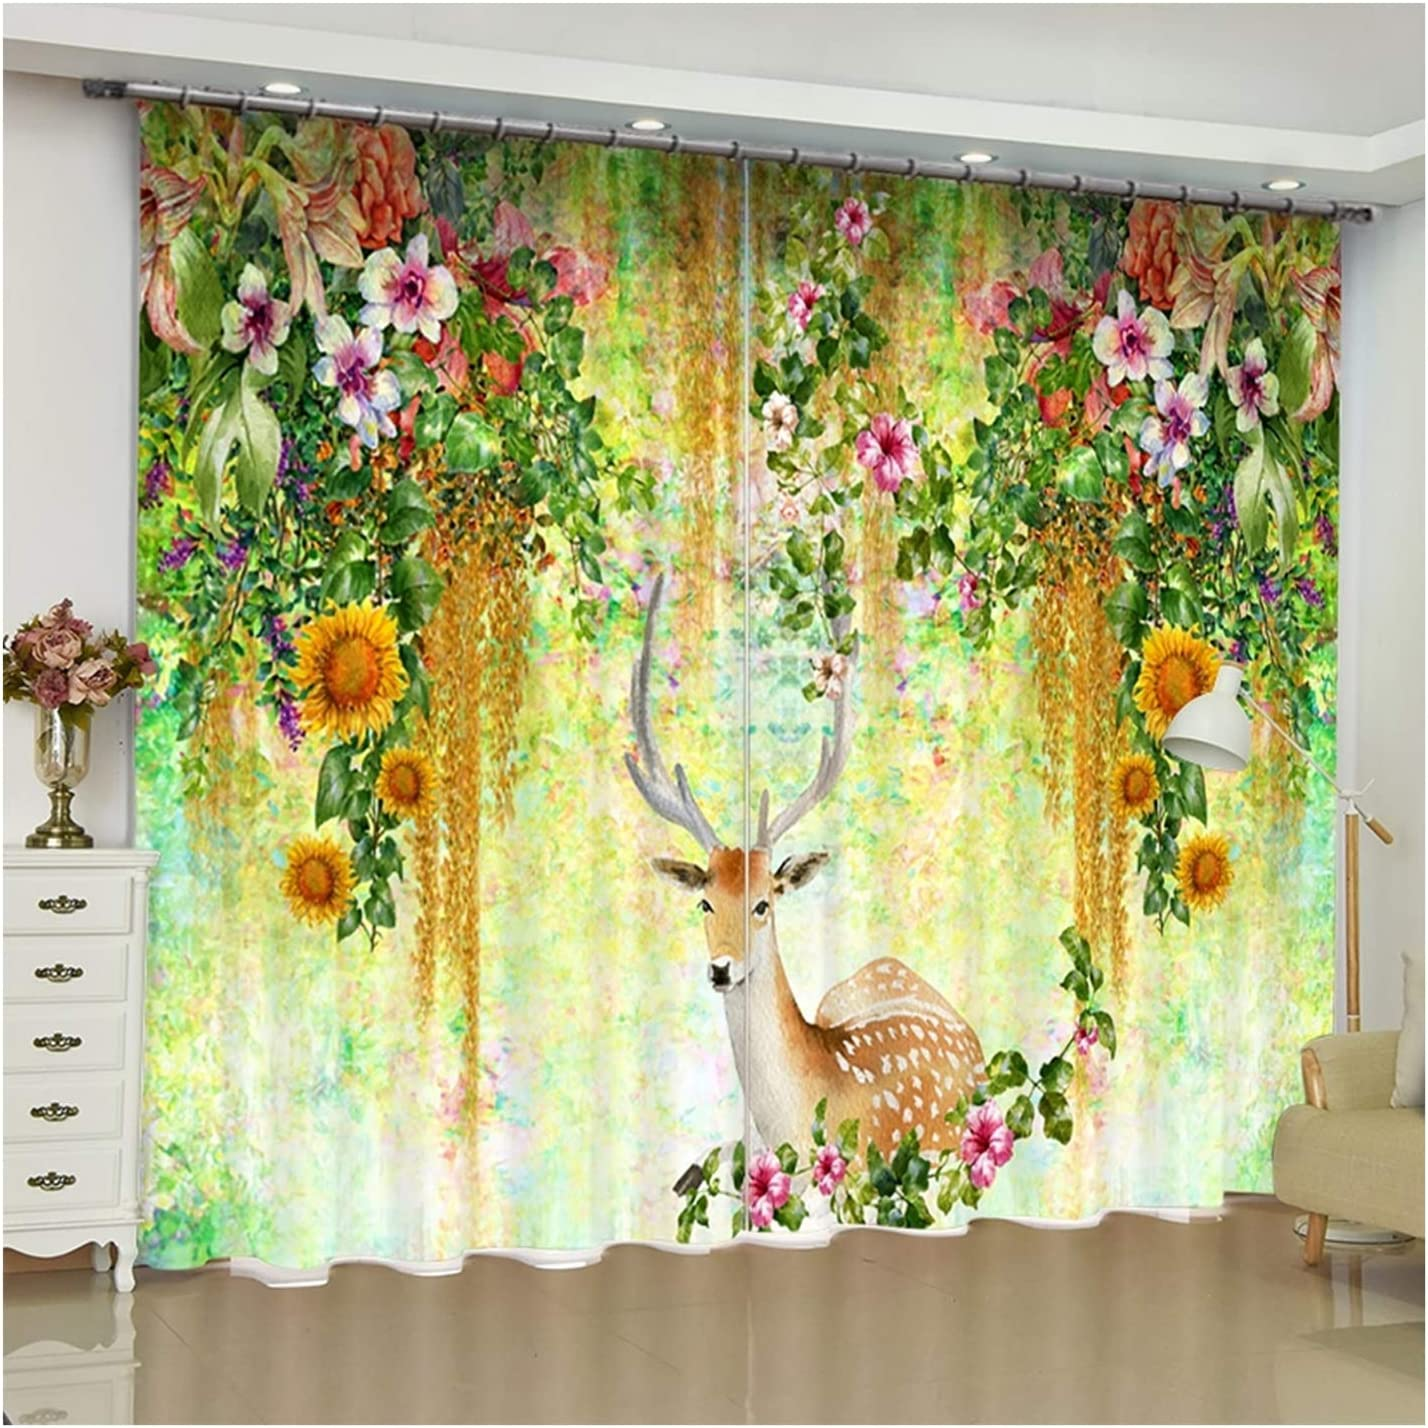 Daesar Quantity limited Curtain Drapes for New sales Living Panels Darkening Room